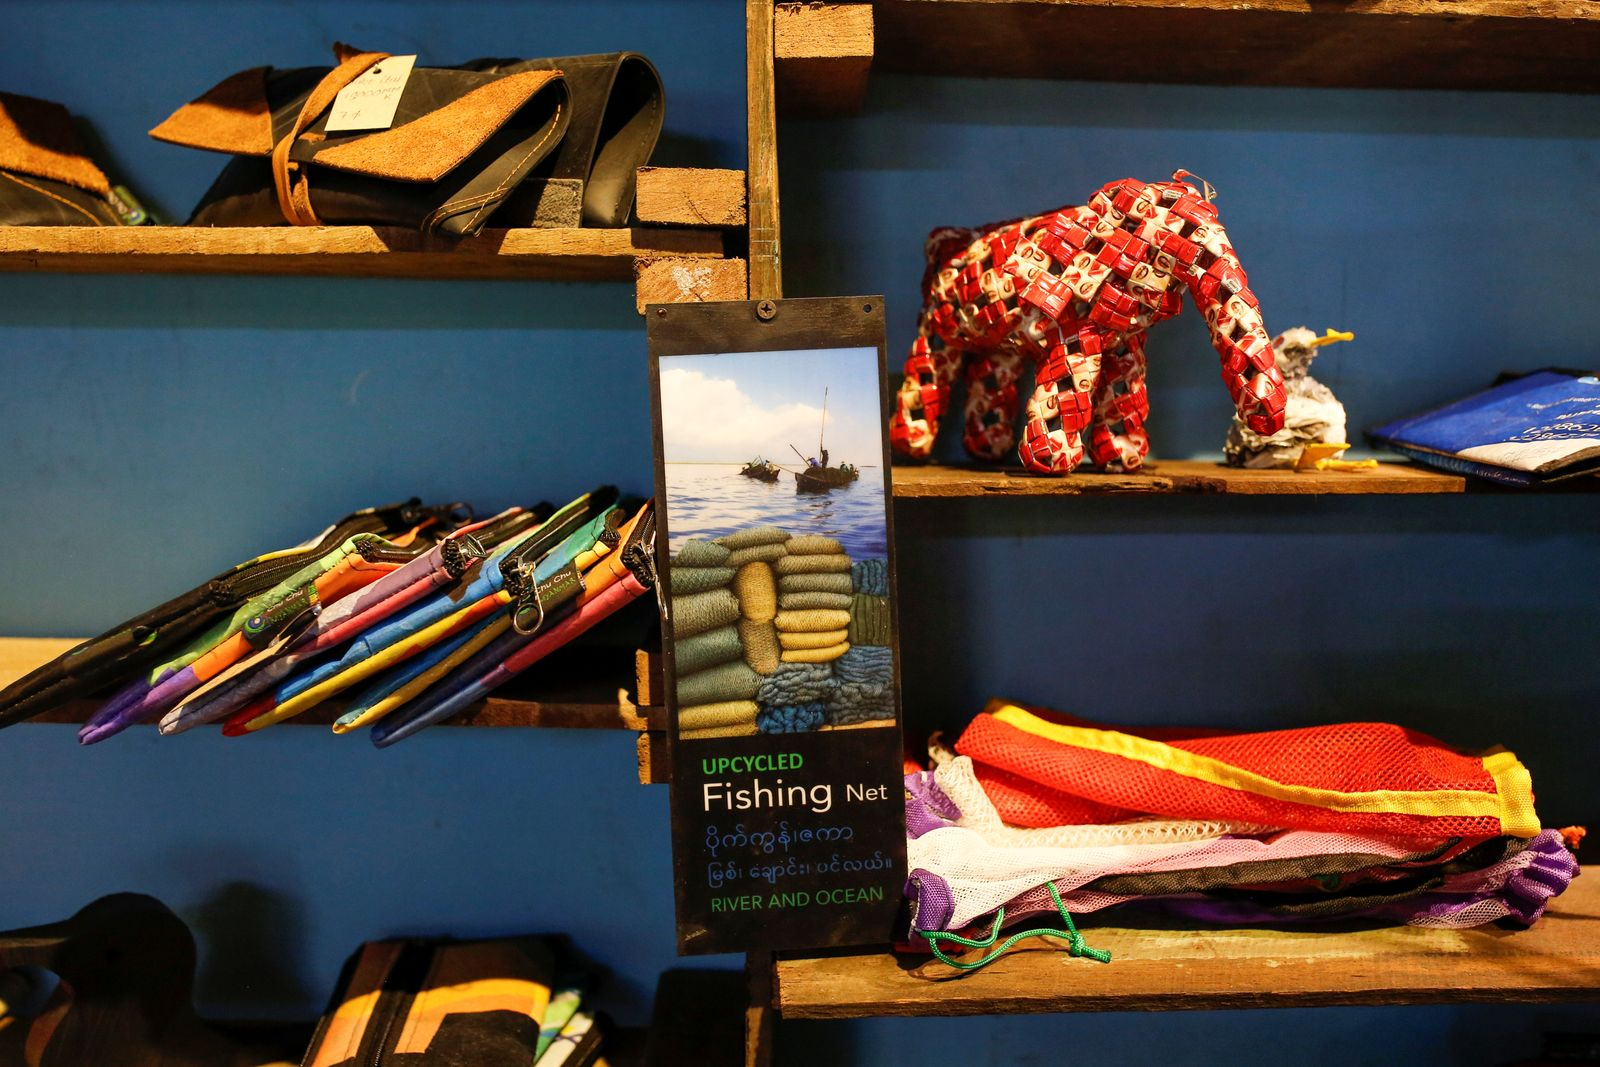 Recycled products are seen on display at ChuChu house in Dalla township, Yangon